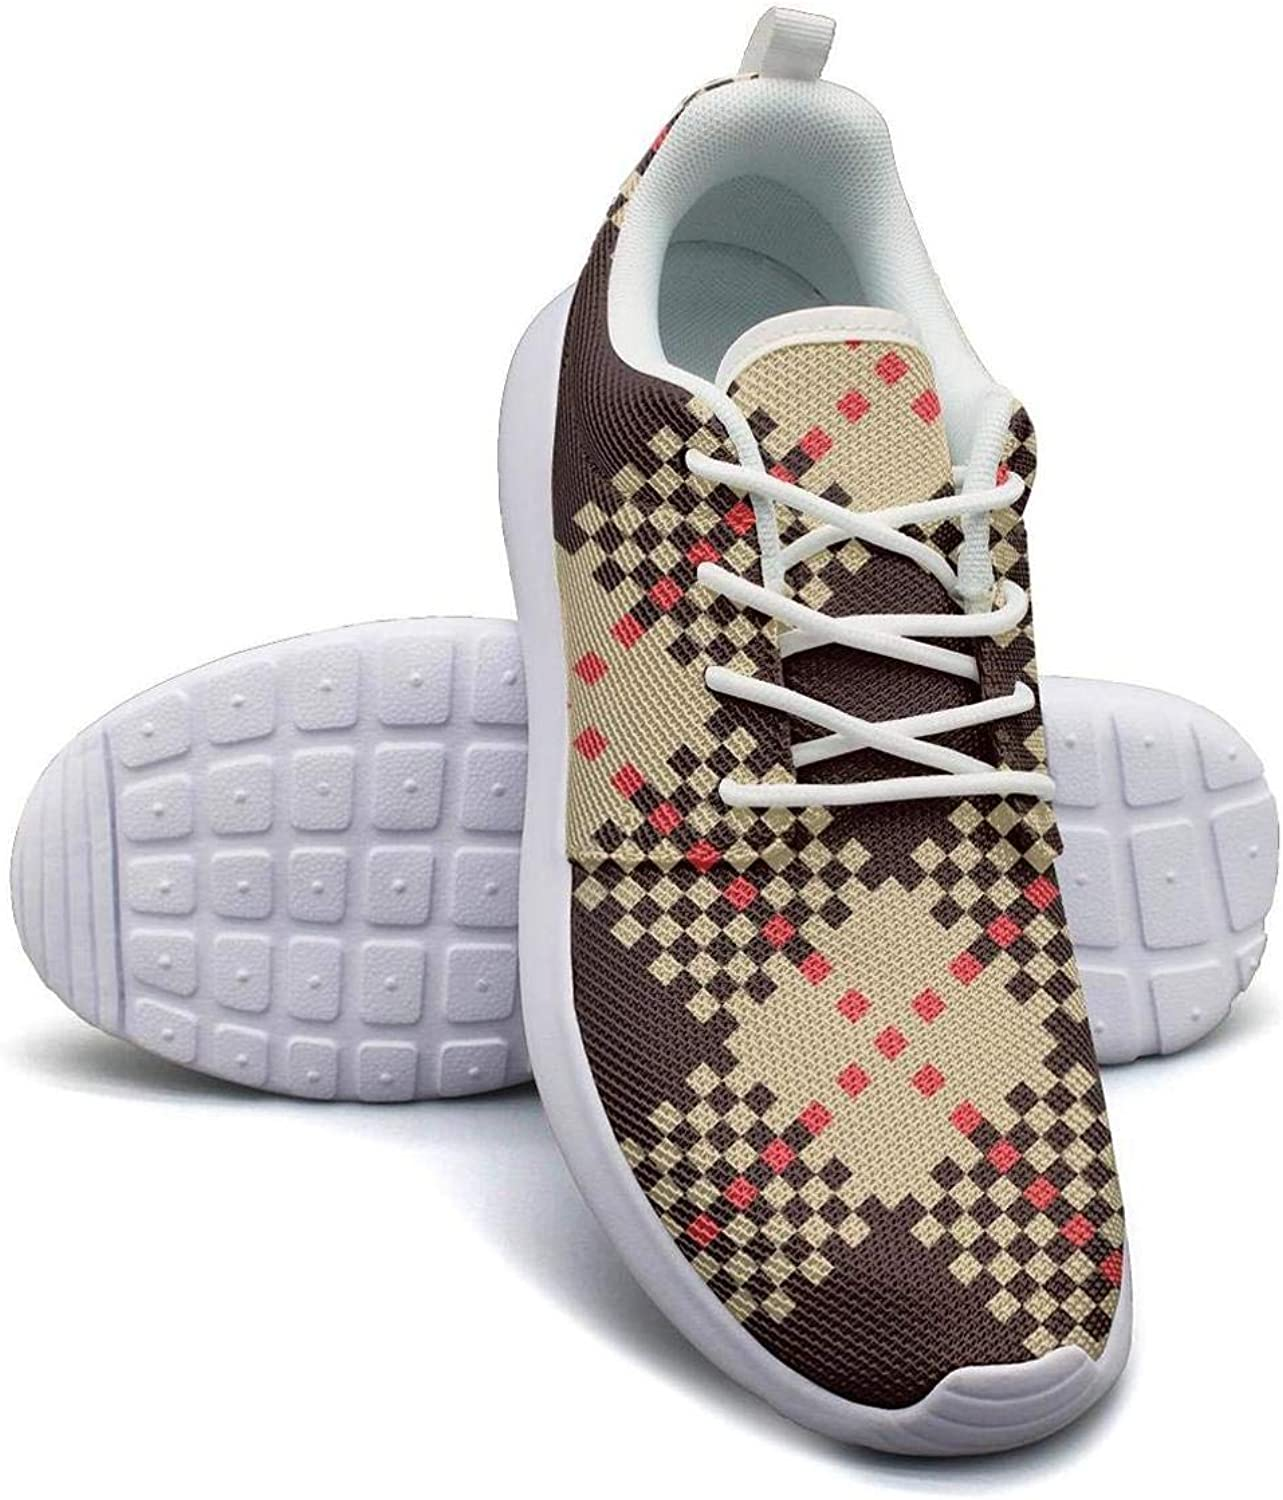 Hobart dfgrwe Red White Checkerboard Mosaic Lattice Girl Canvas Casual shoes Designer Tennis shoes